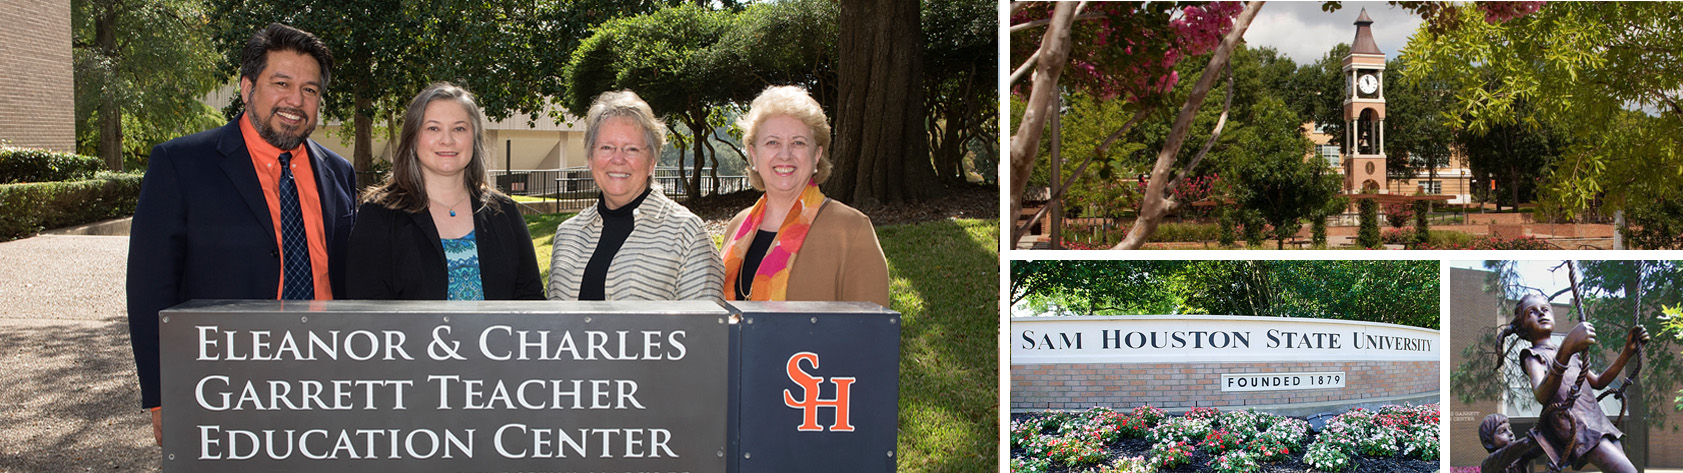 Garrett Center Sam Houston State University. Creating a path to your future. Families, Educators, Students.